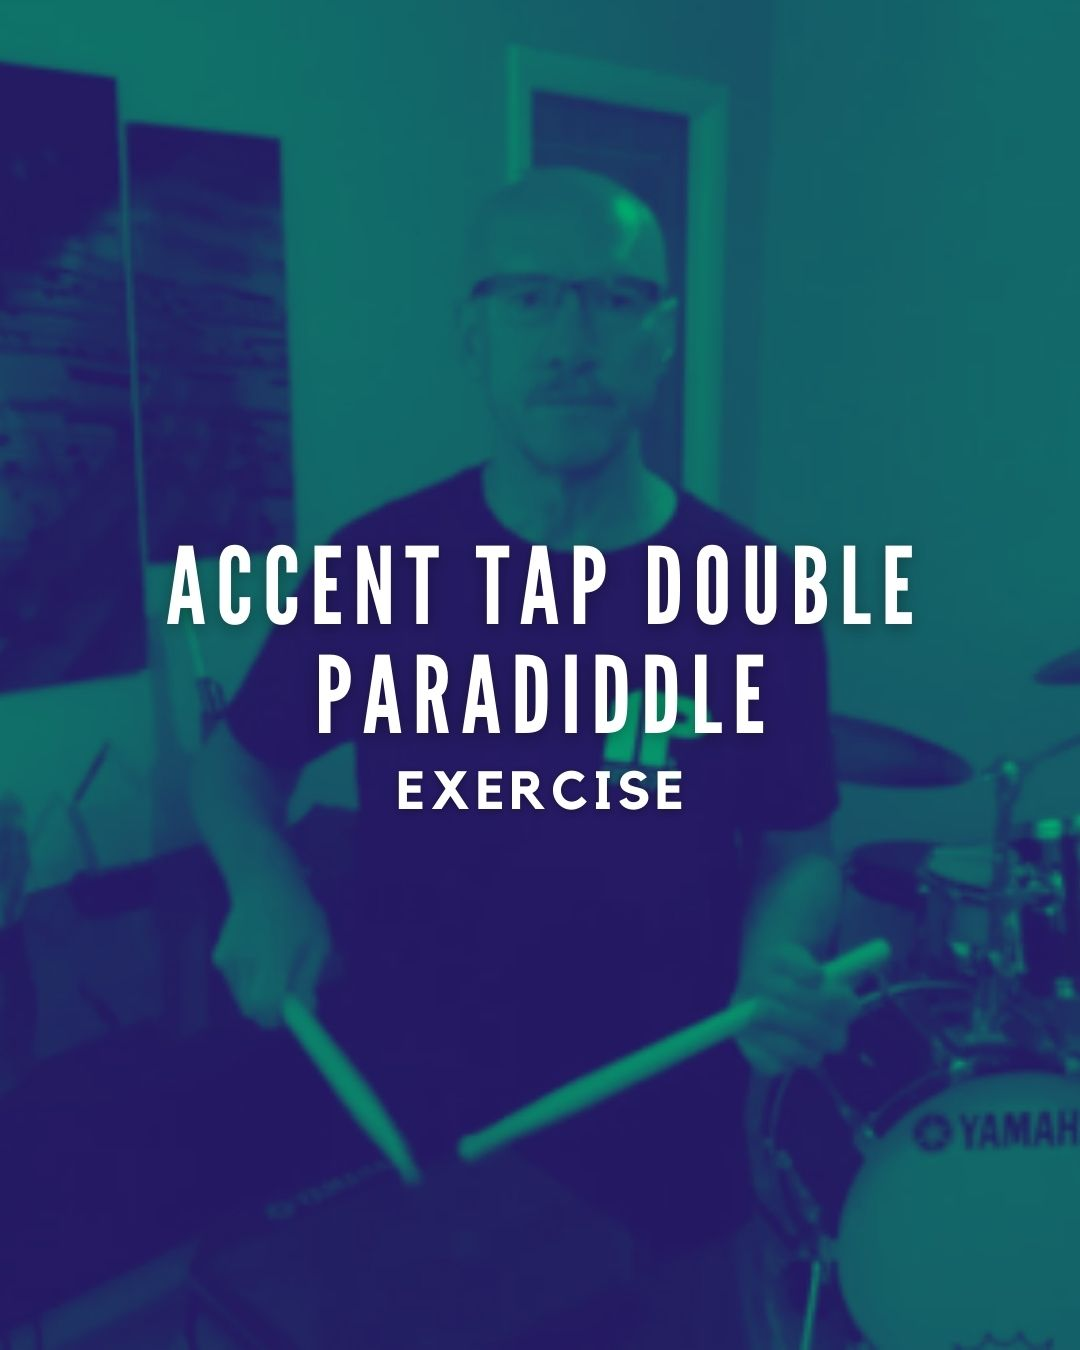 Accent Tap Double Paradiddle